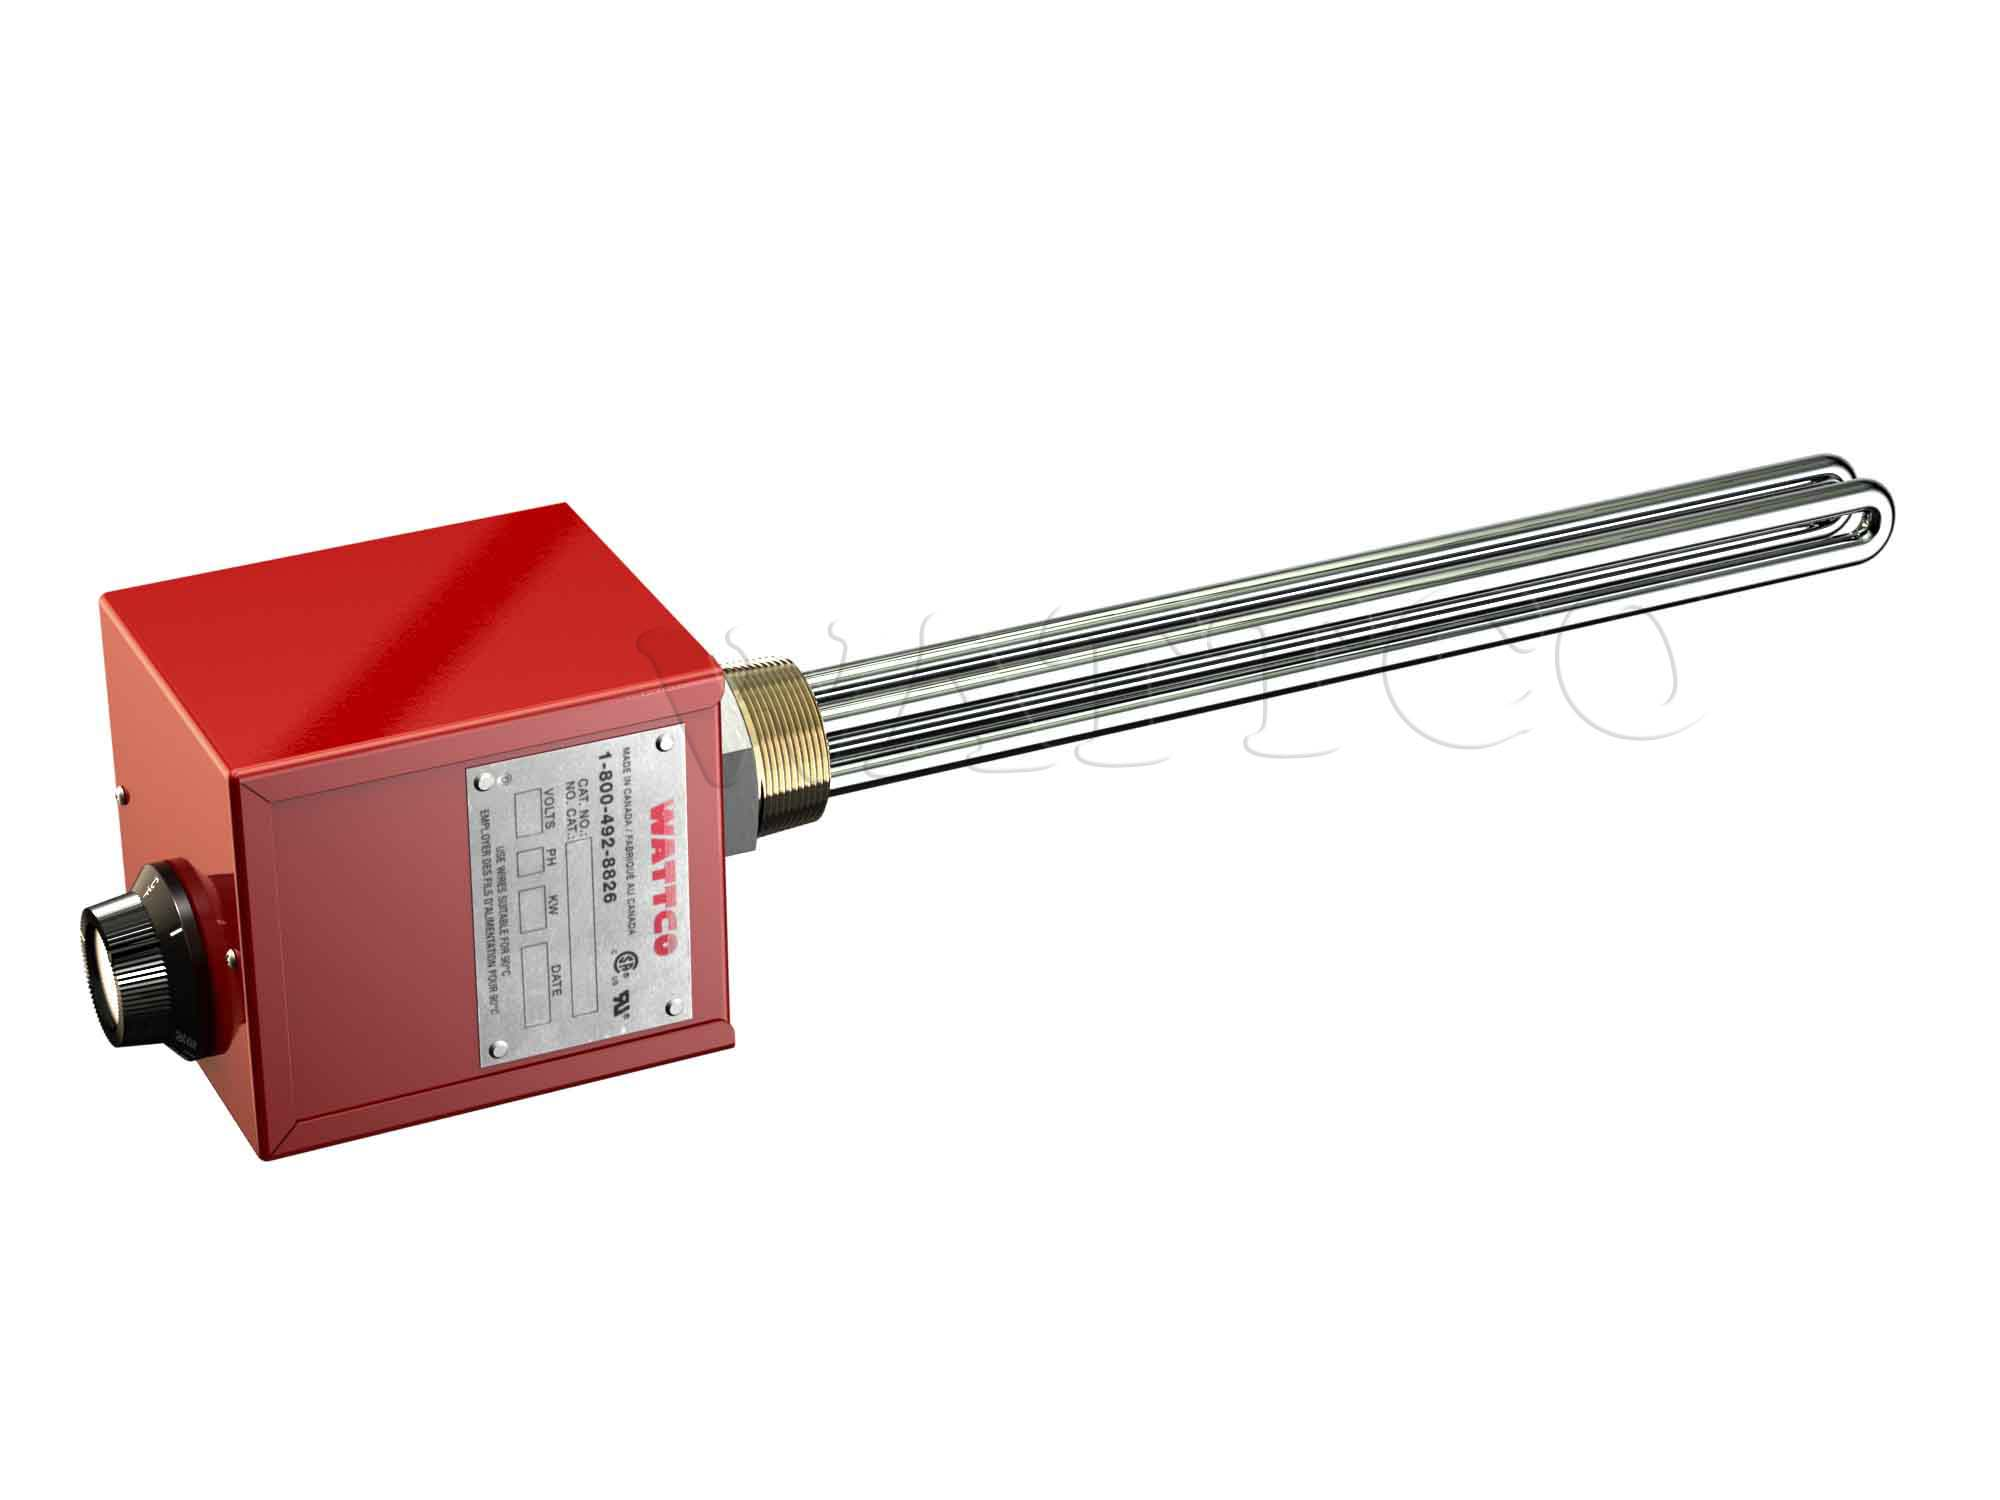 Cost of a water heater element - Simply Put These Two Trademark Materials Made By Special Metals Corporation Are The Top Of The Line Of The Heating Elements Industry